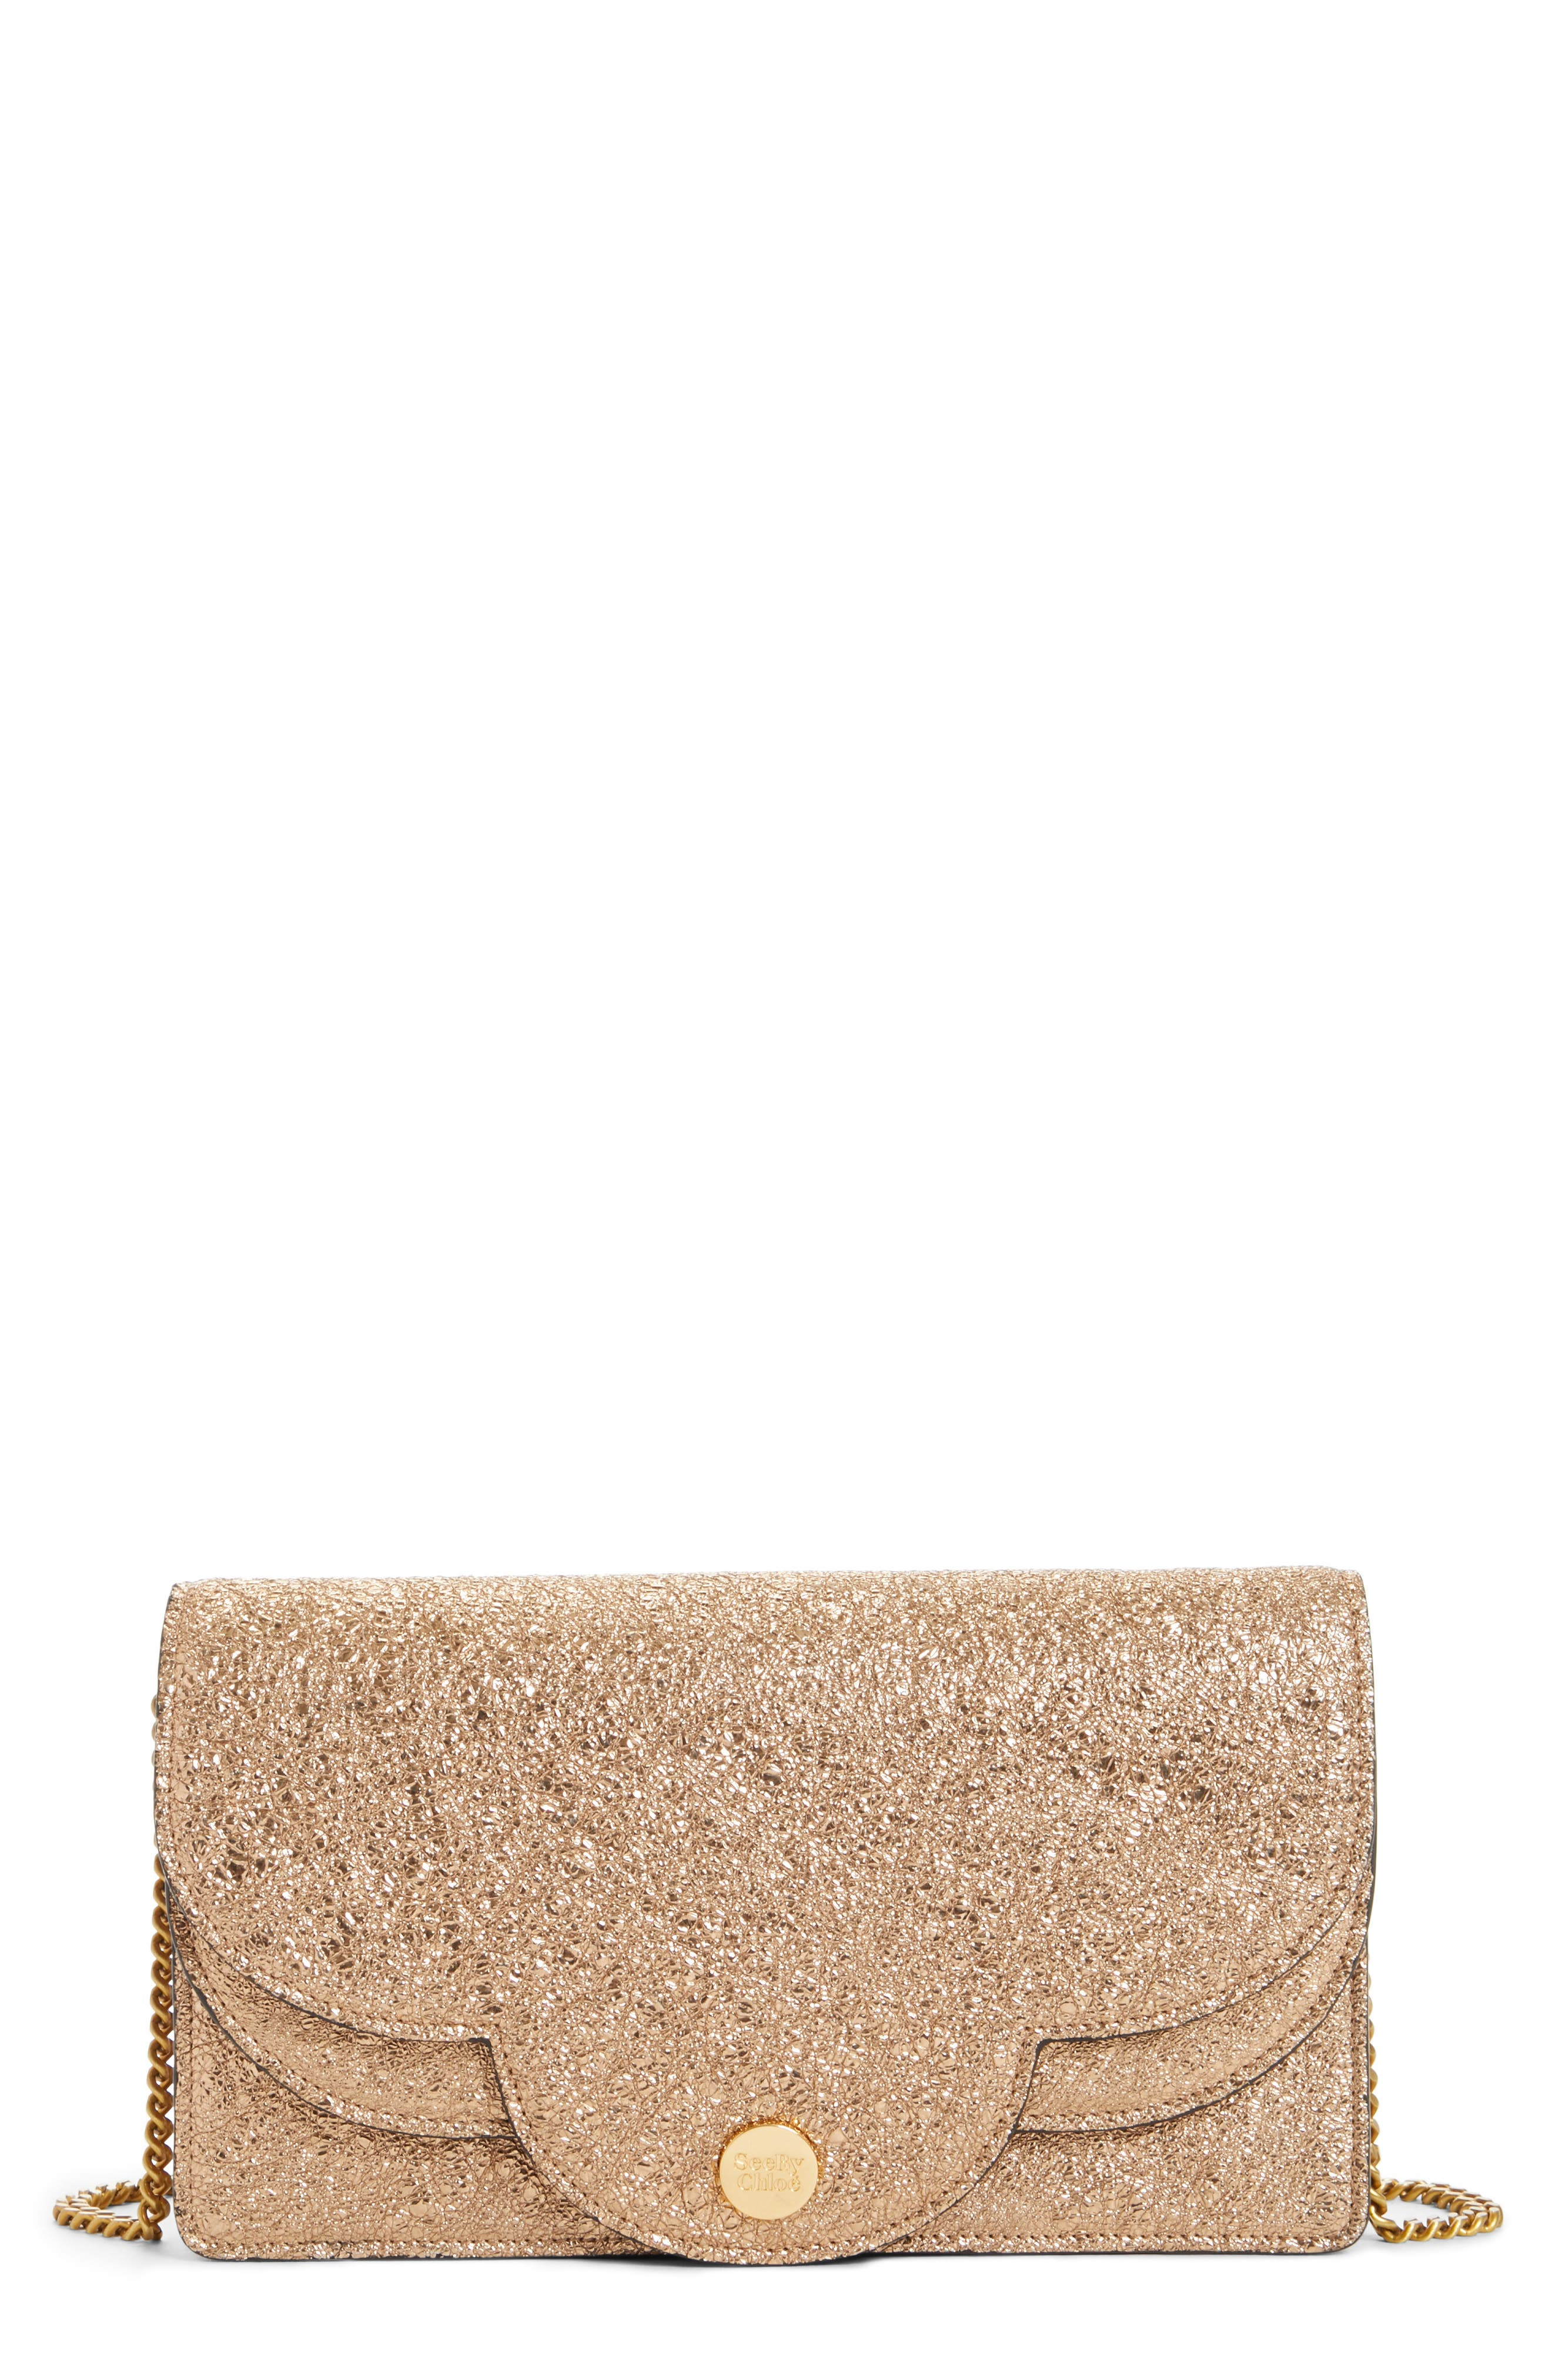 SEE BY CHLOÉ Polina Metallic Leather Crossbody Clutch, Main, color, 220